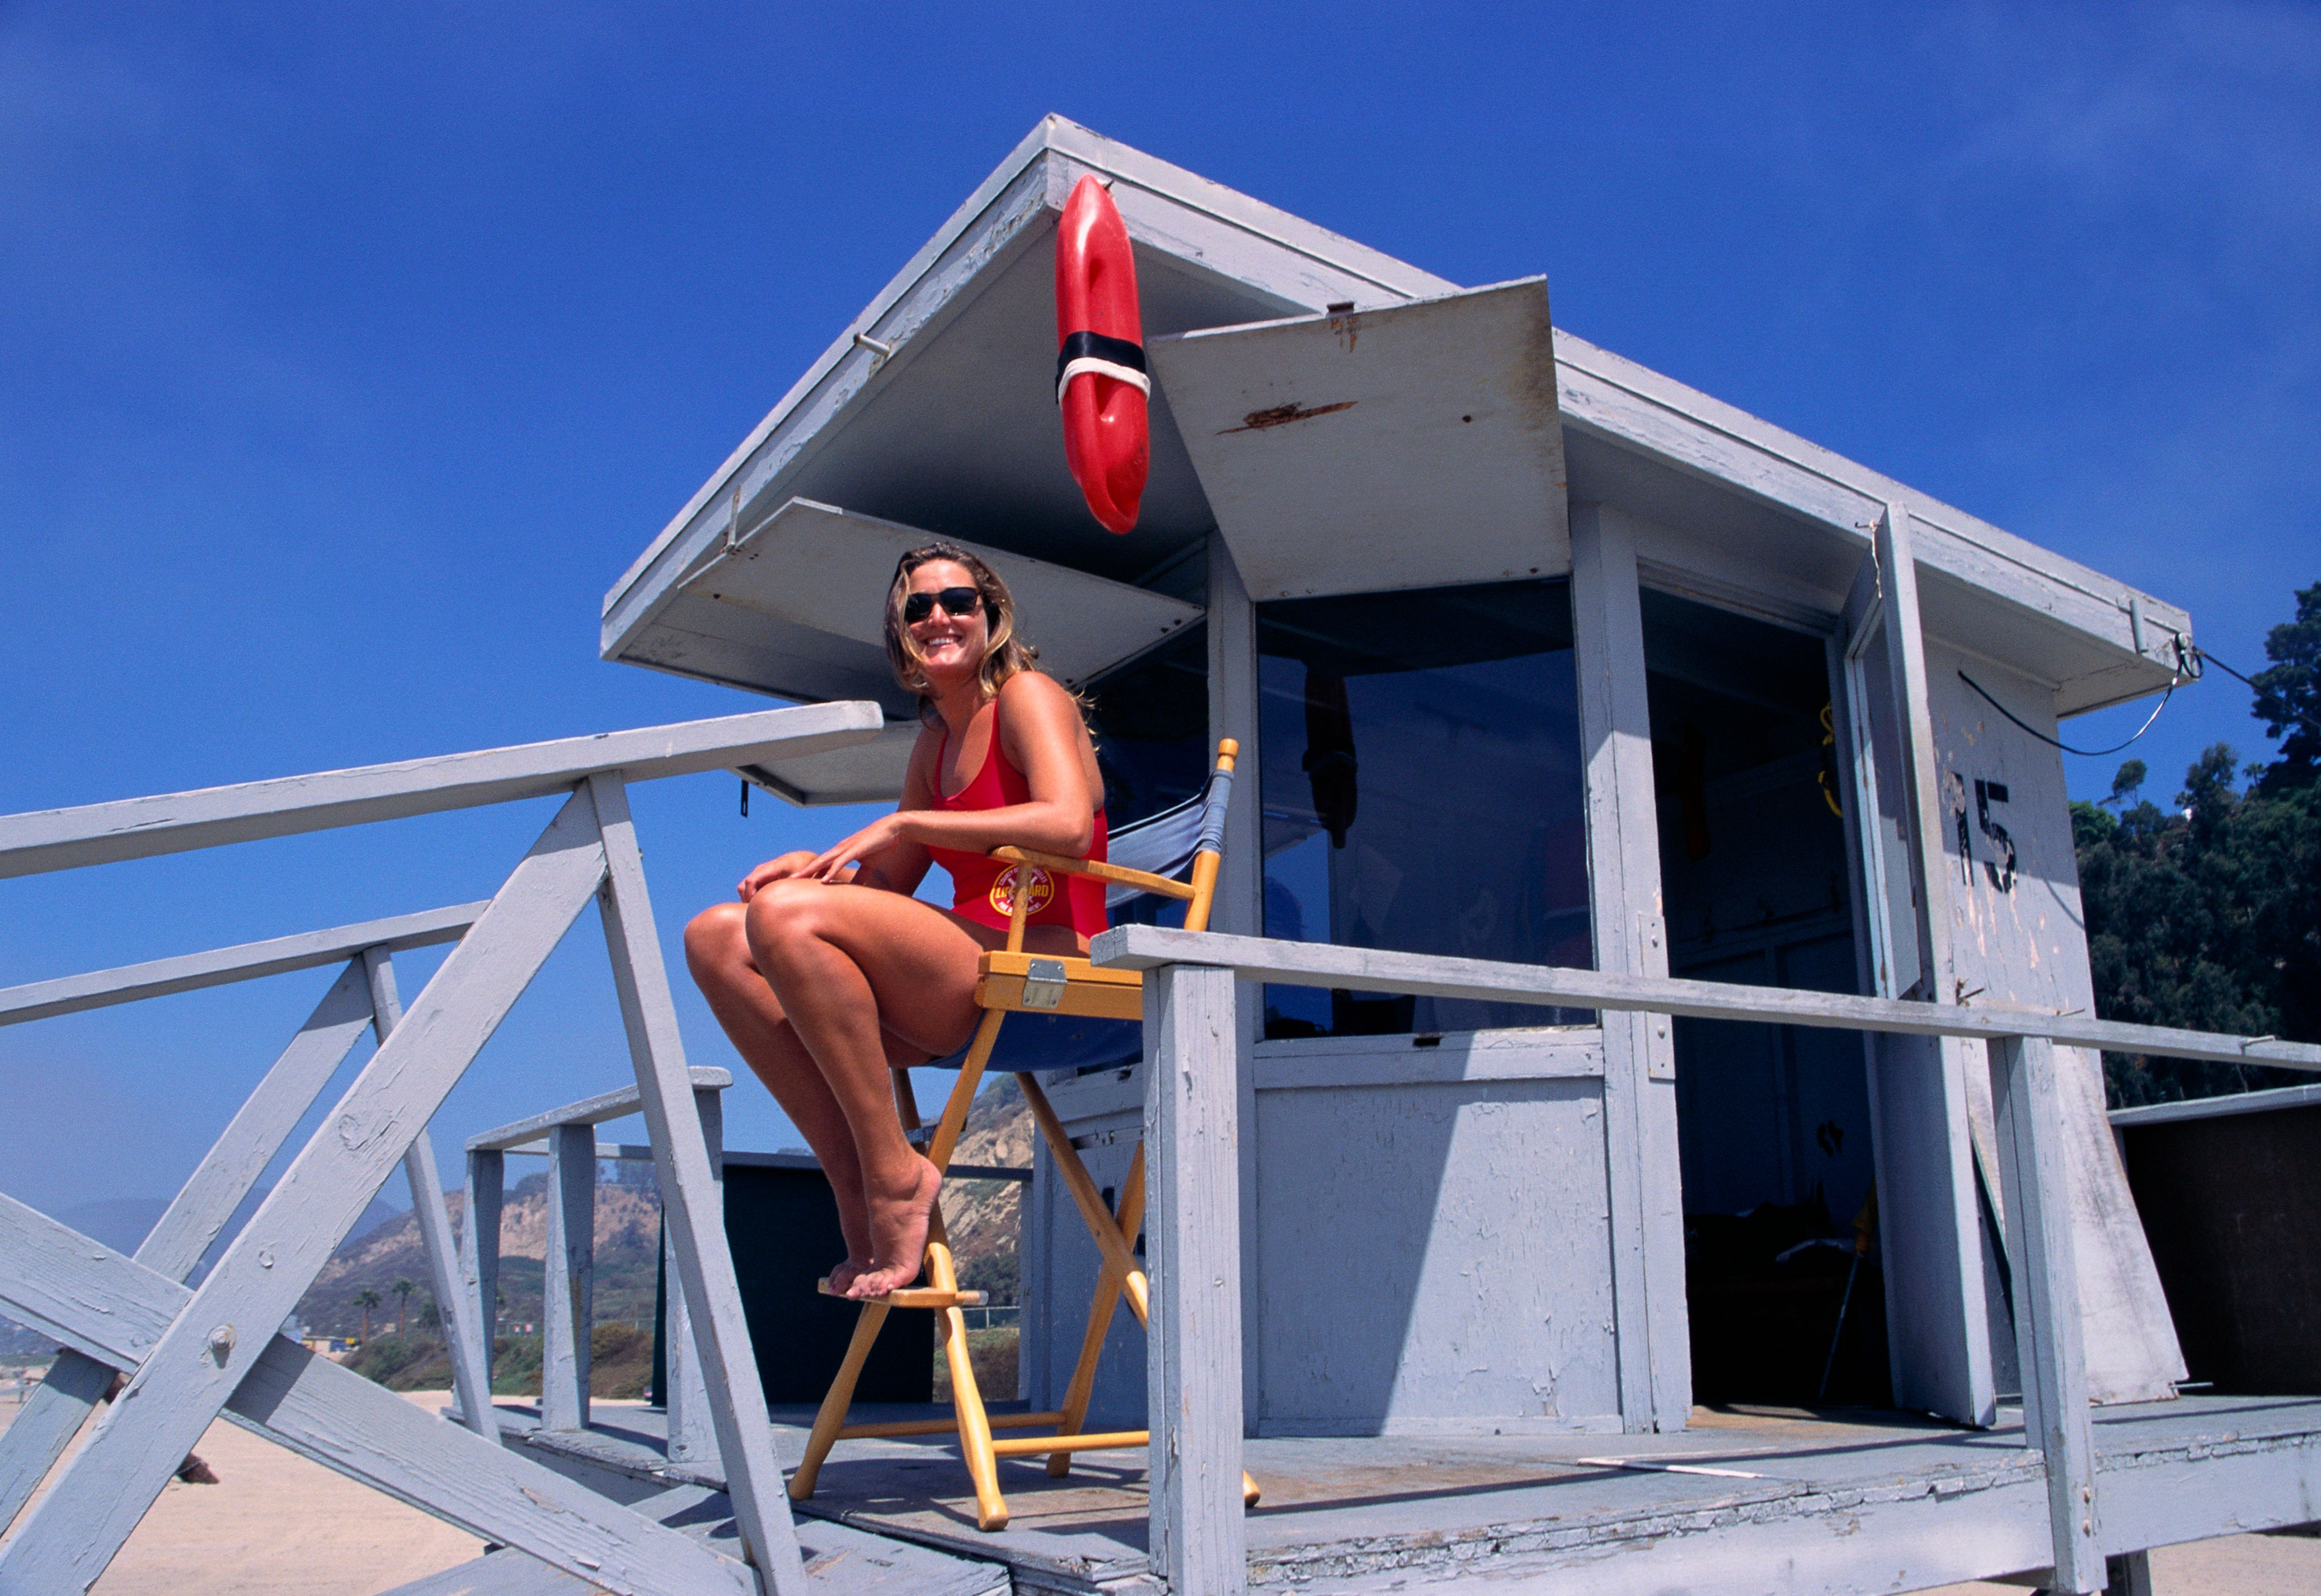 A lifeguard station on the beach in Santa Monica, California.